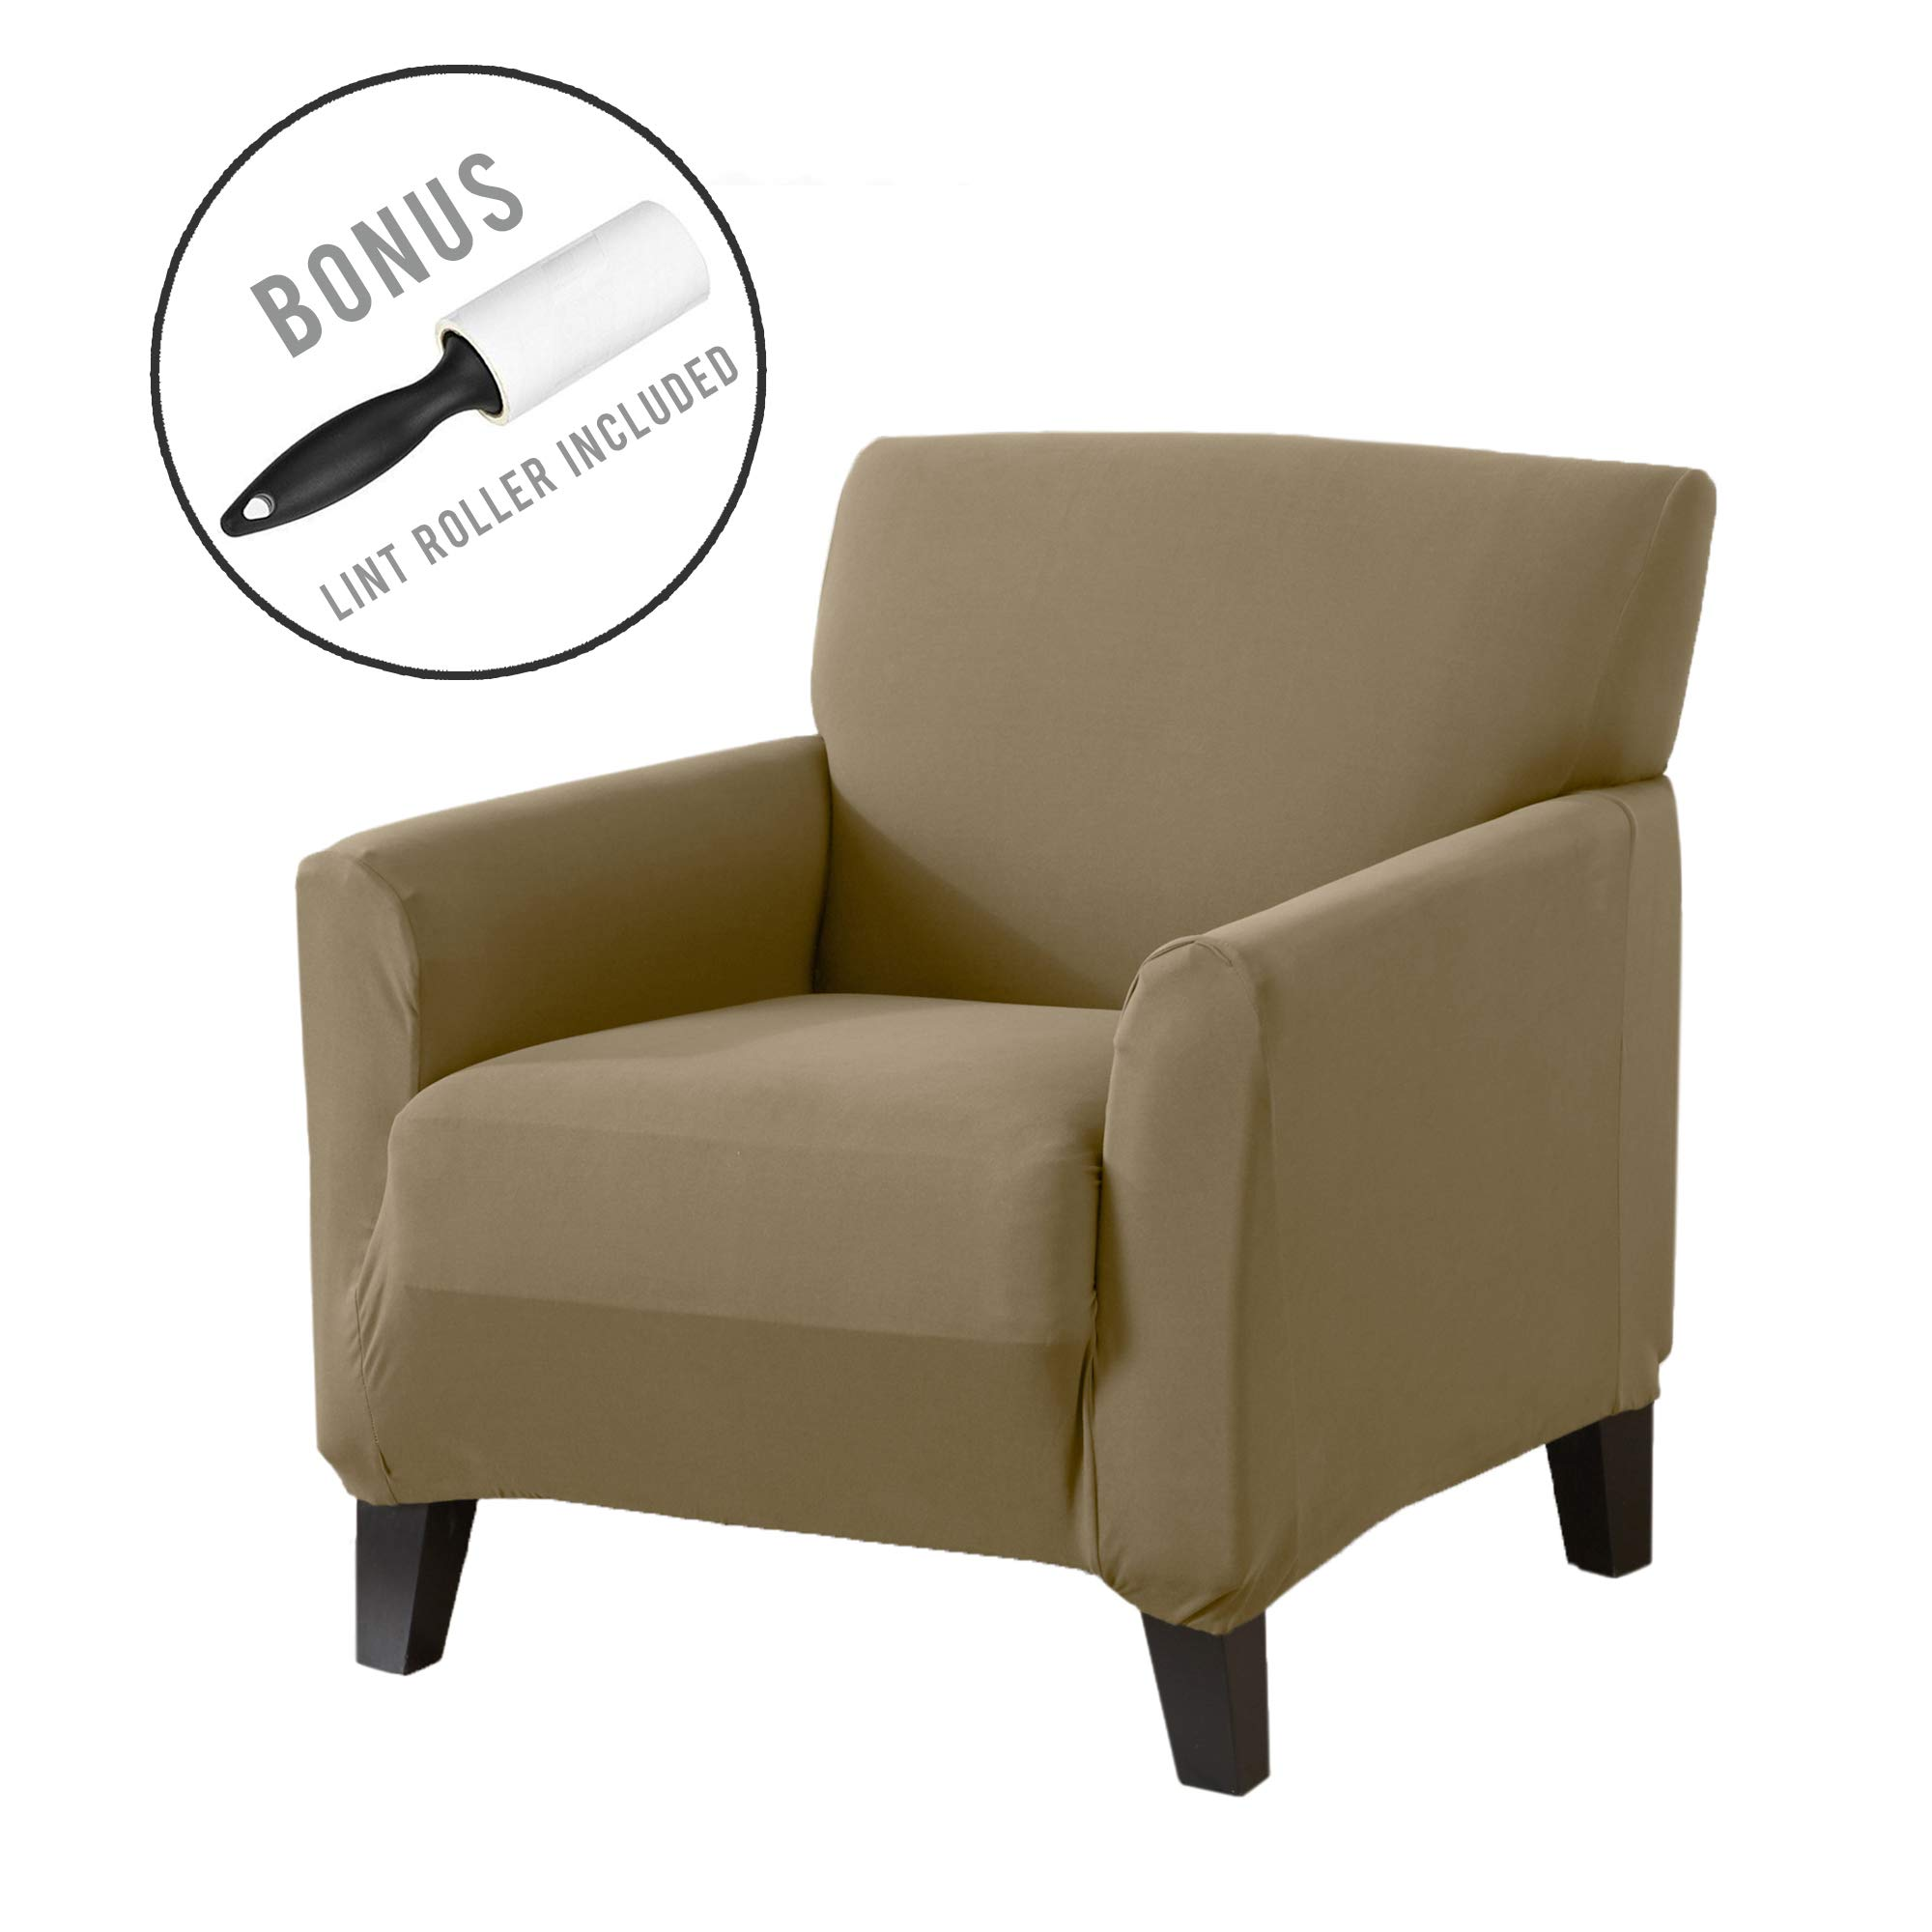 Great Bay Home Form Fit, Slip Resistant, Strapless Slipcover Includes Bonus Lint Roller. Furniture Protector Featuring Super Soft Jersey Knit Fabric. Seneca Collection (Chair, Warm Sand)